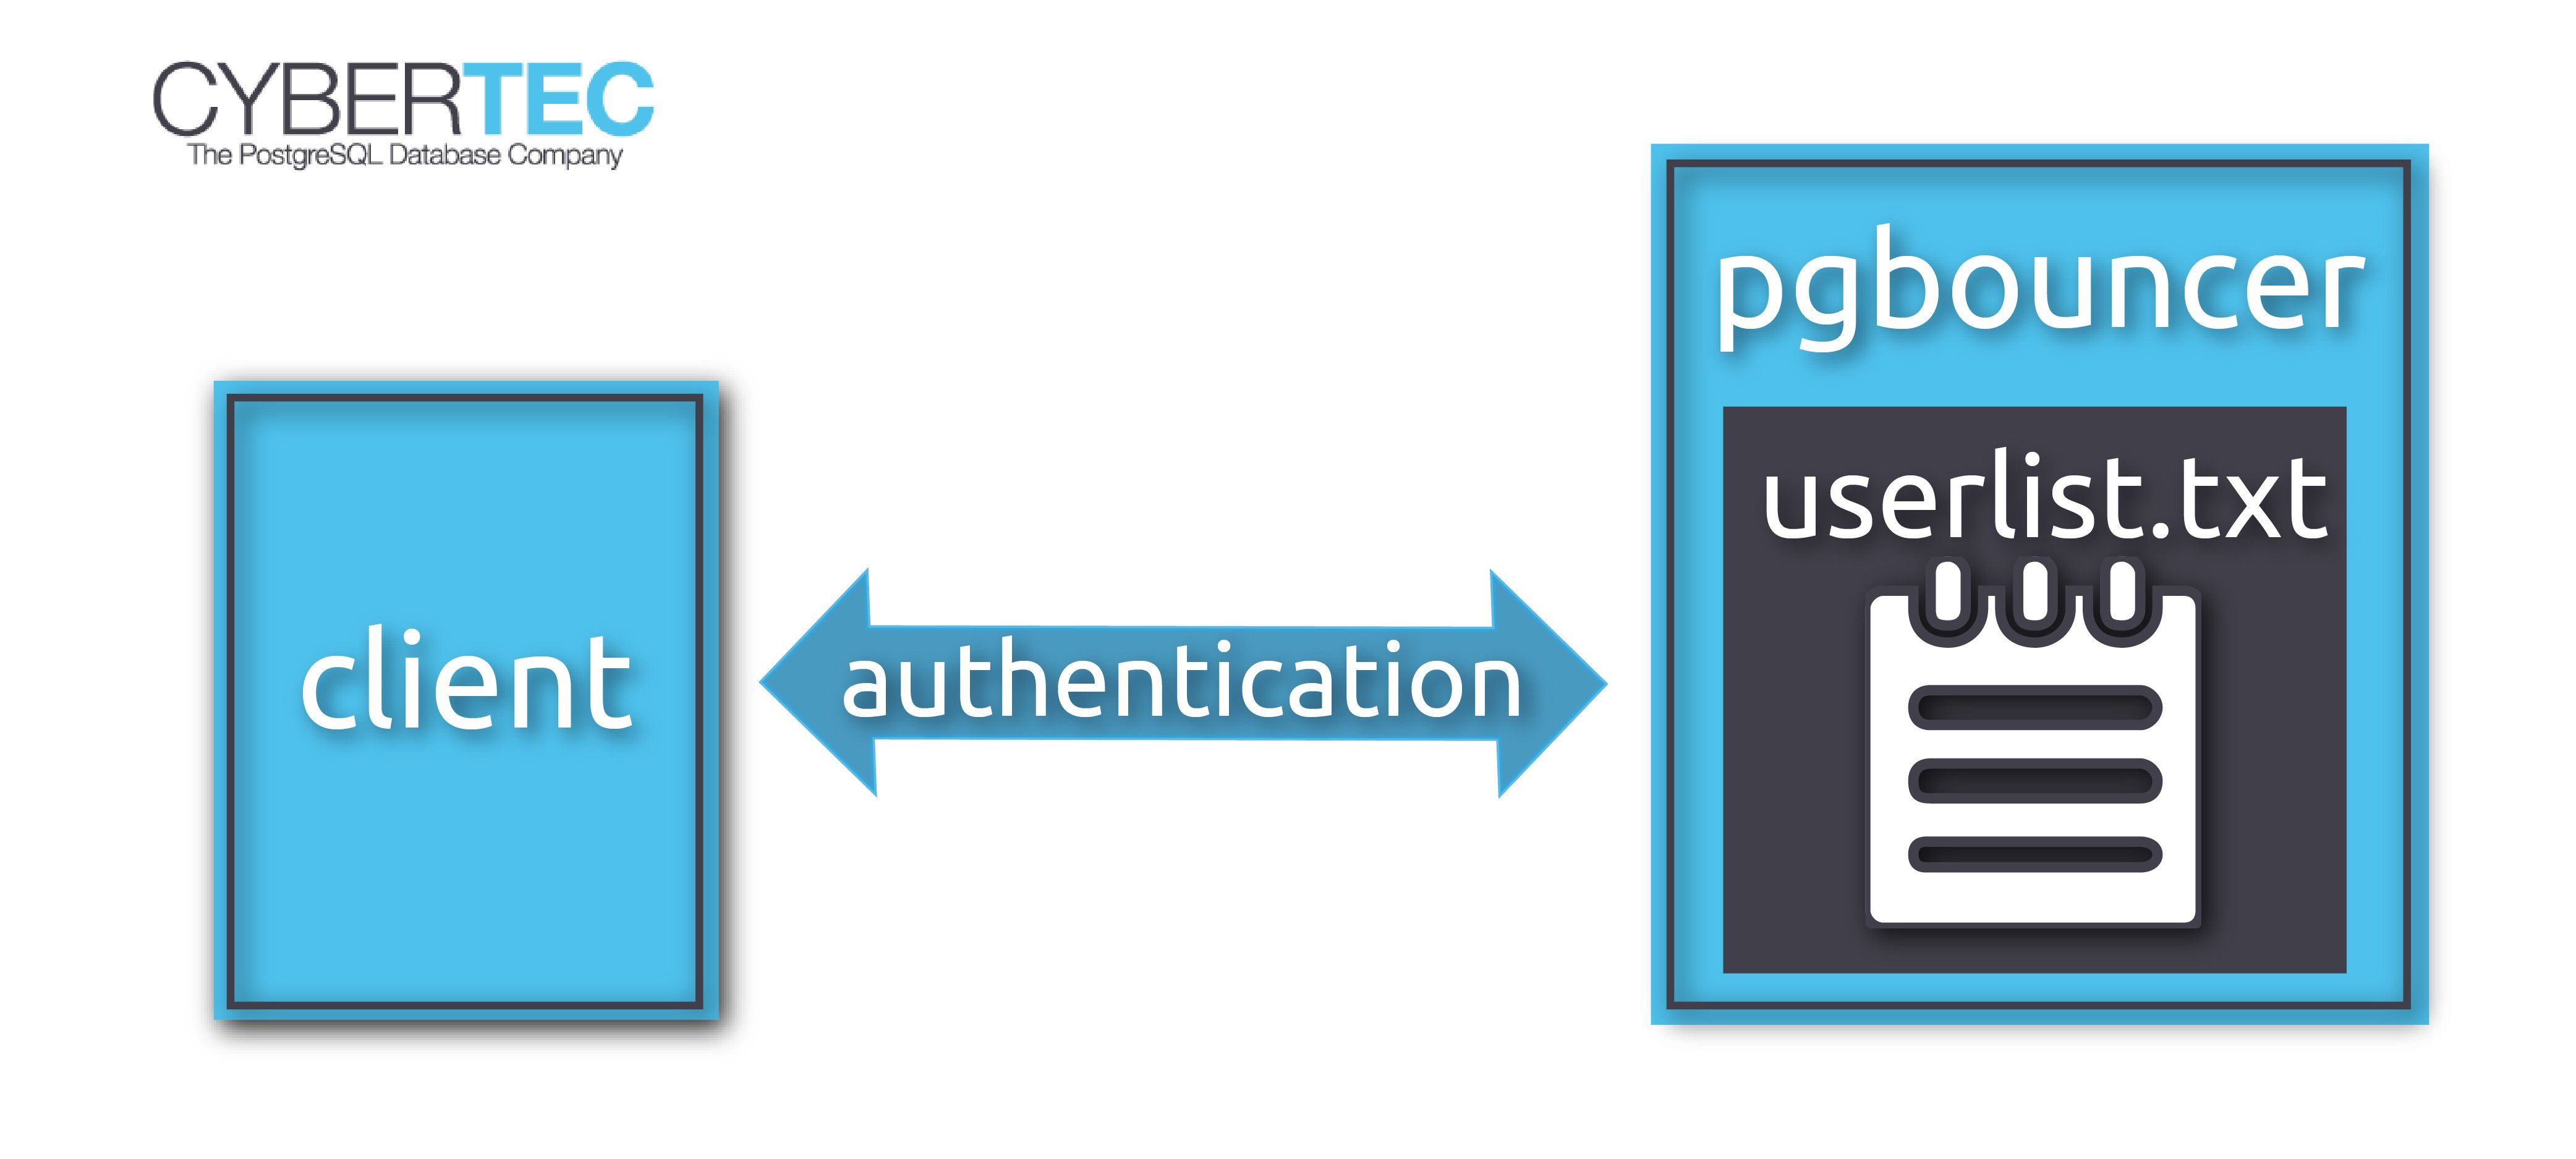 pgbouncer authentication - configuration in simple steps